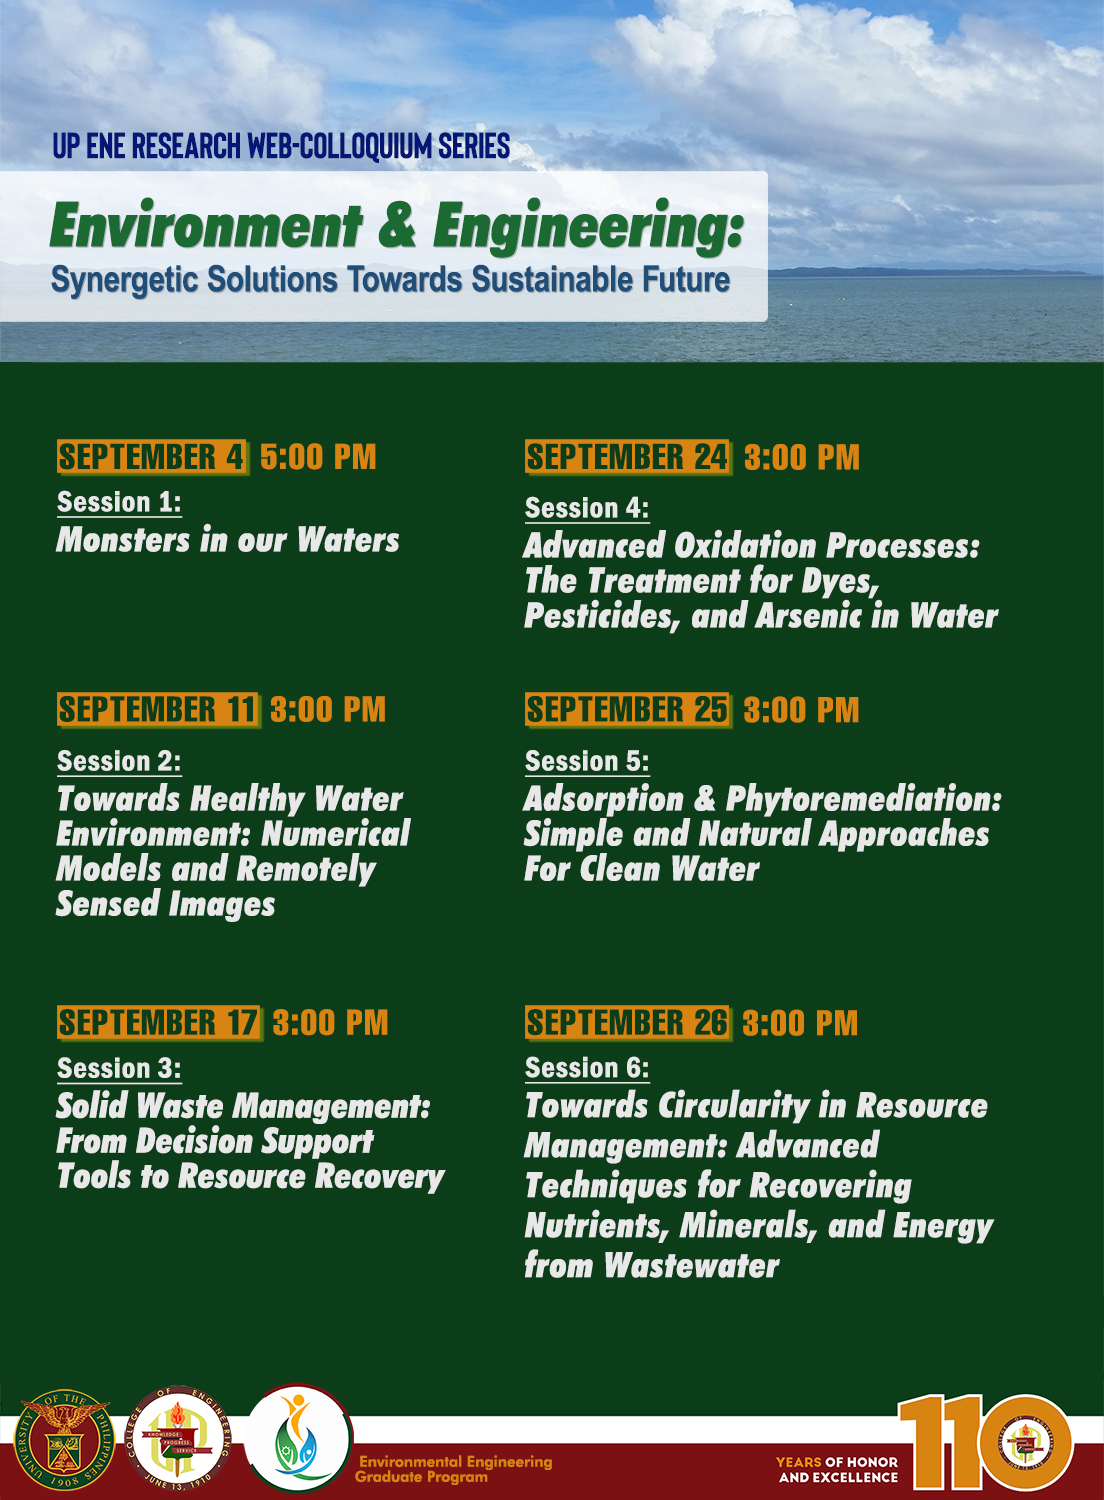 """""""Environment & Engineering: Synergetic Solutions Towards Sustainable Future"""" Webinar Series"""